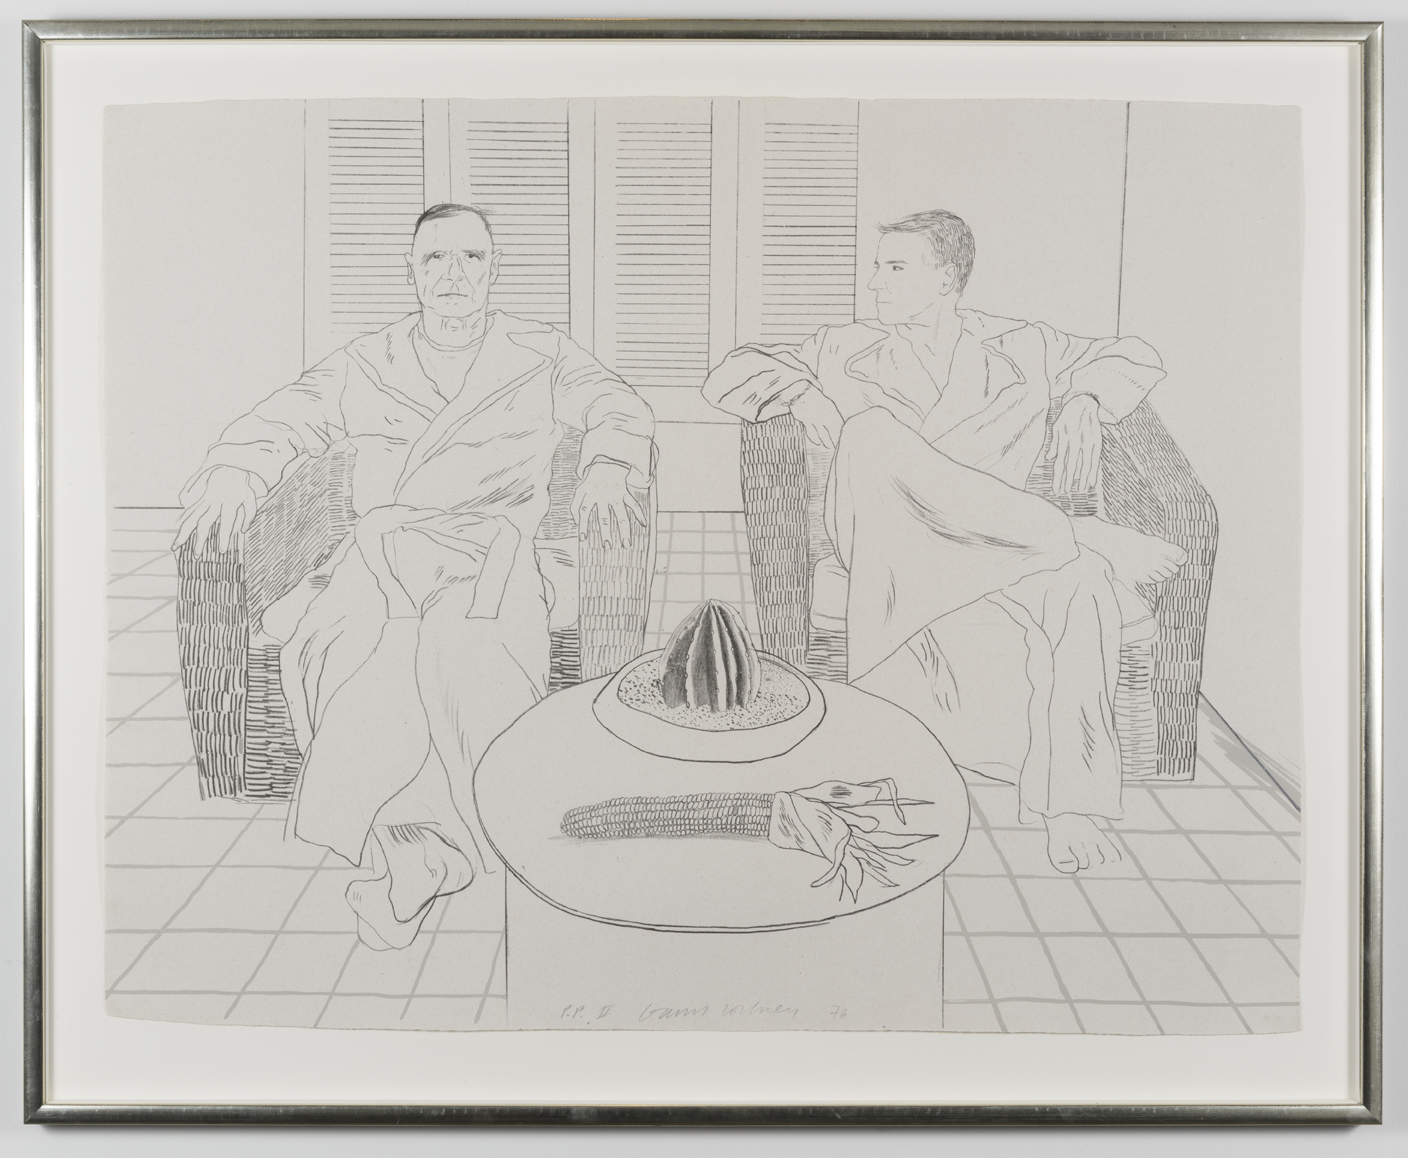 David Hockney Christopher Isherwood Don Bachardy